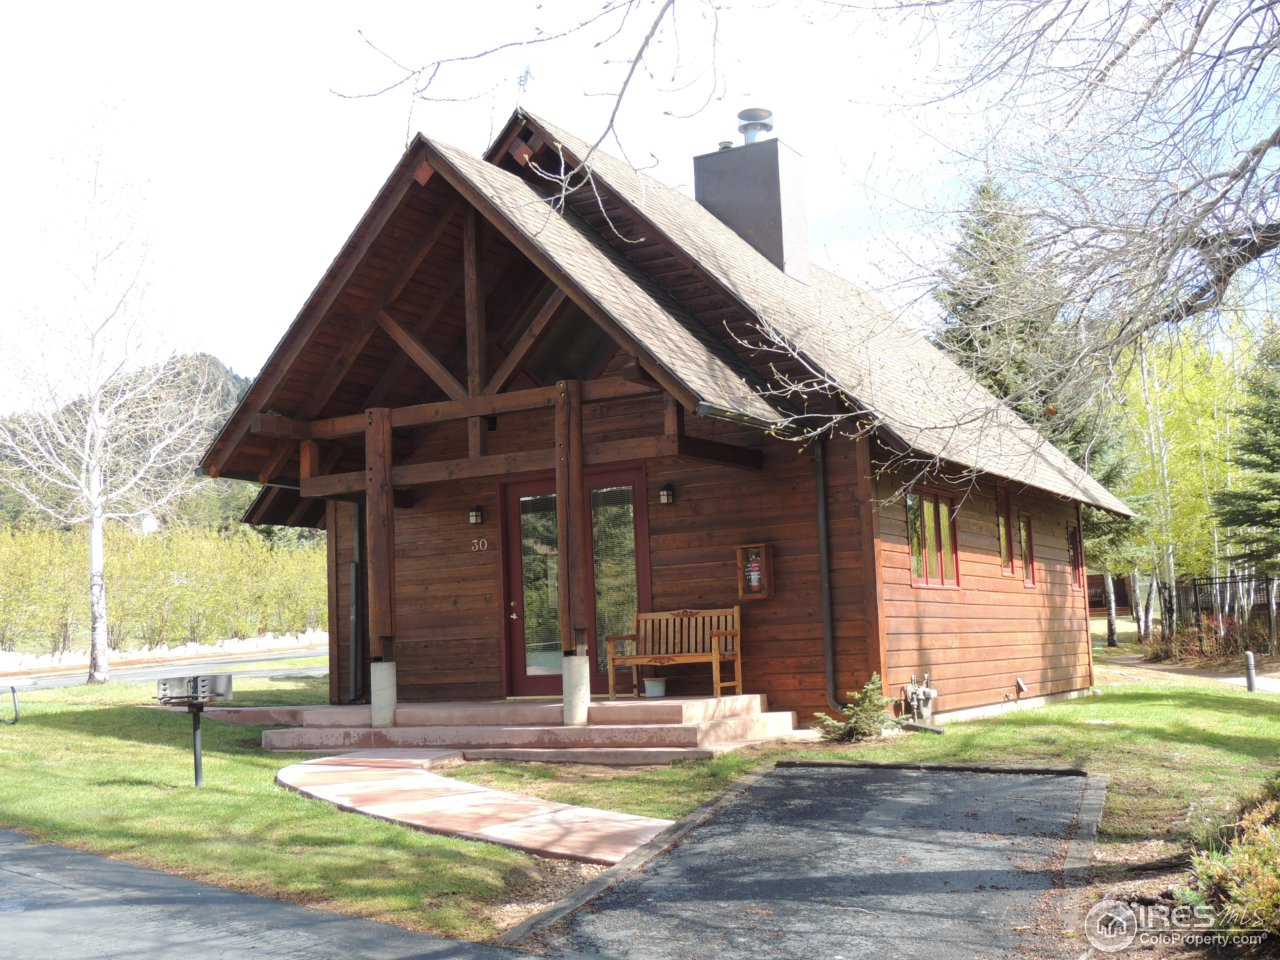 our campingskills little lodging cozy hotels park cabins estes the cabin campgrounds koa for week rmnp rentals